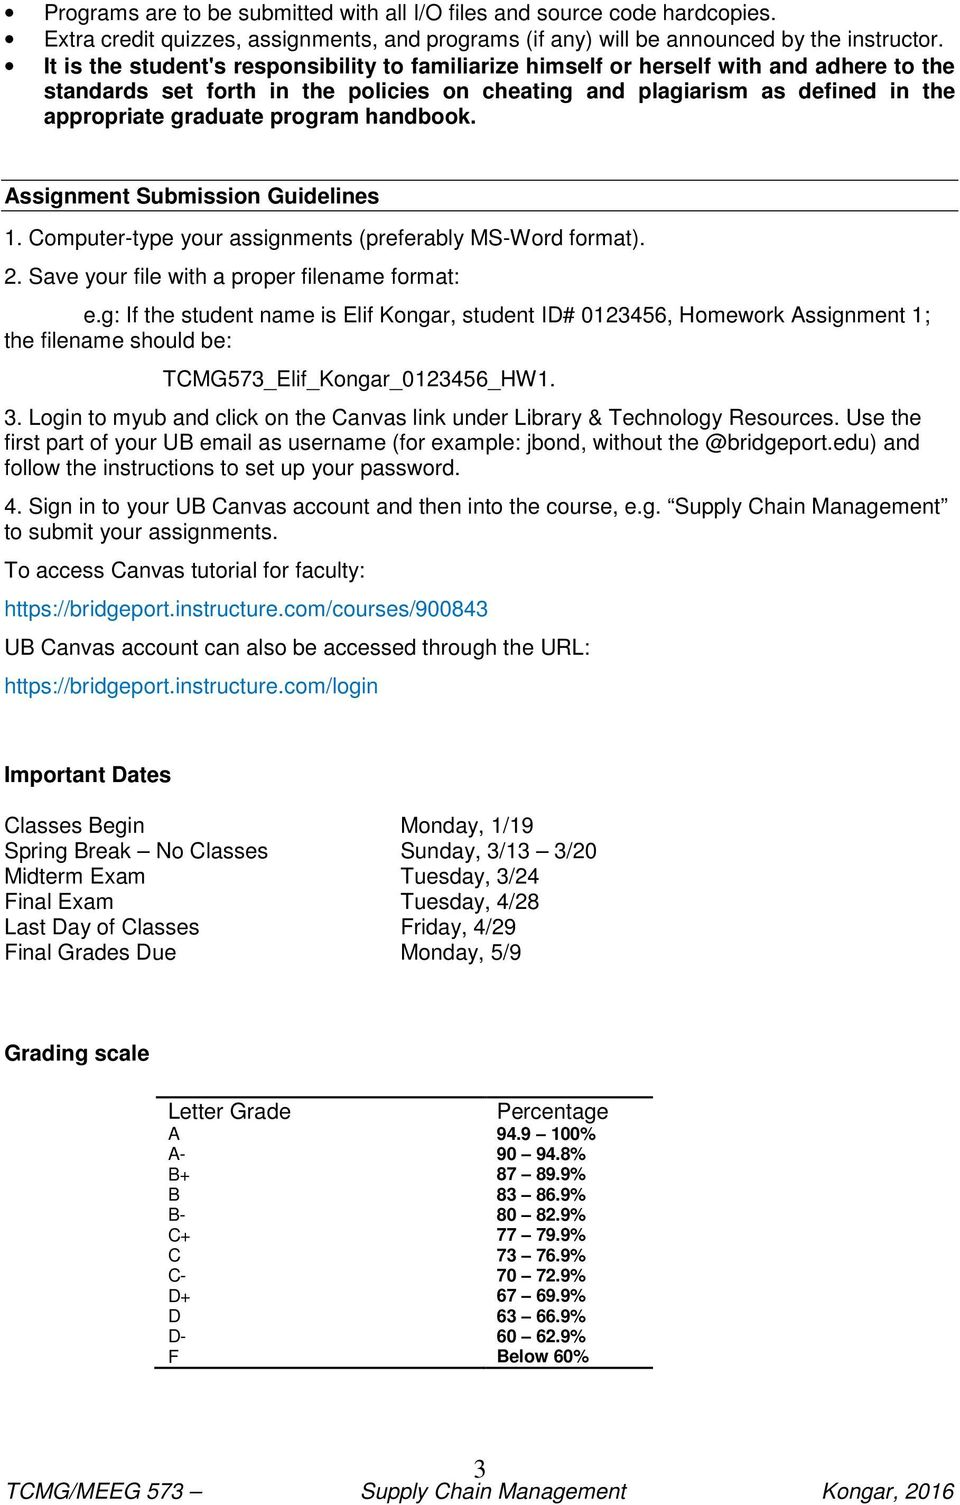 program handbook. Assignment Submission Guidelines 1. Computer-type your assignments (preferably MS-Word format). 2. Save your file with a proper filename format: e.